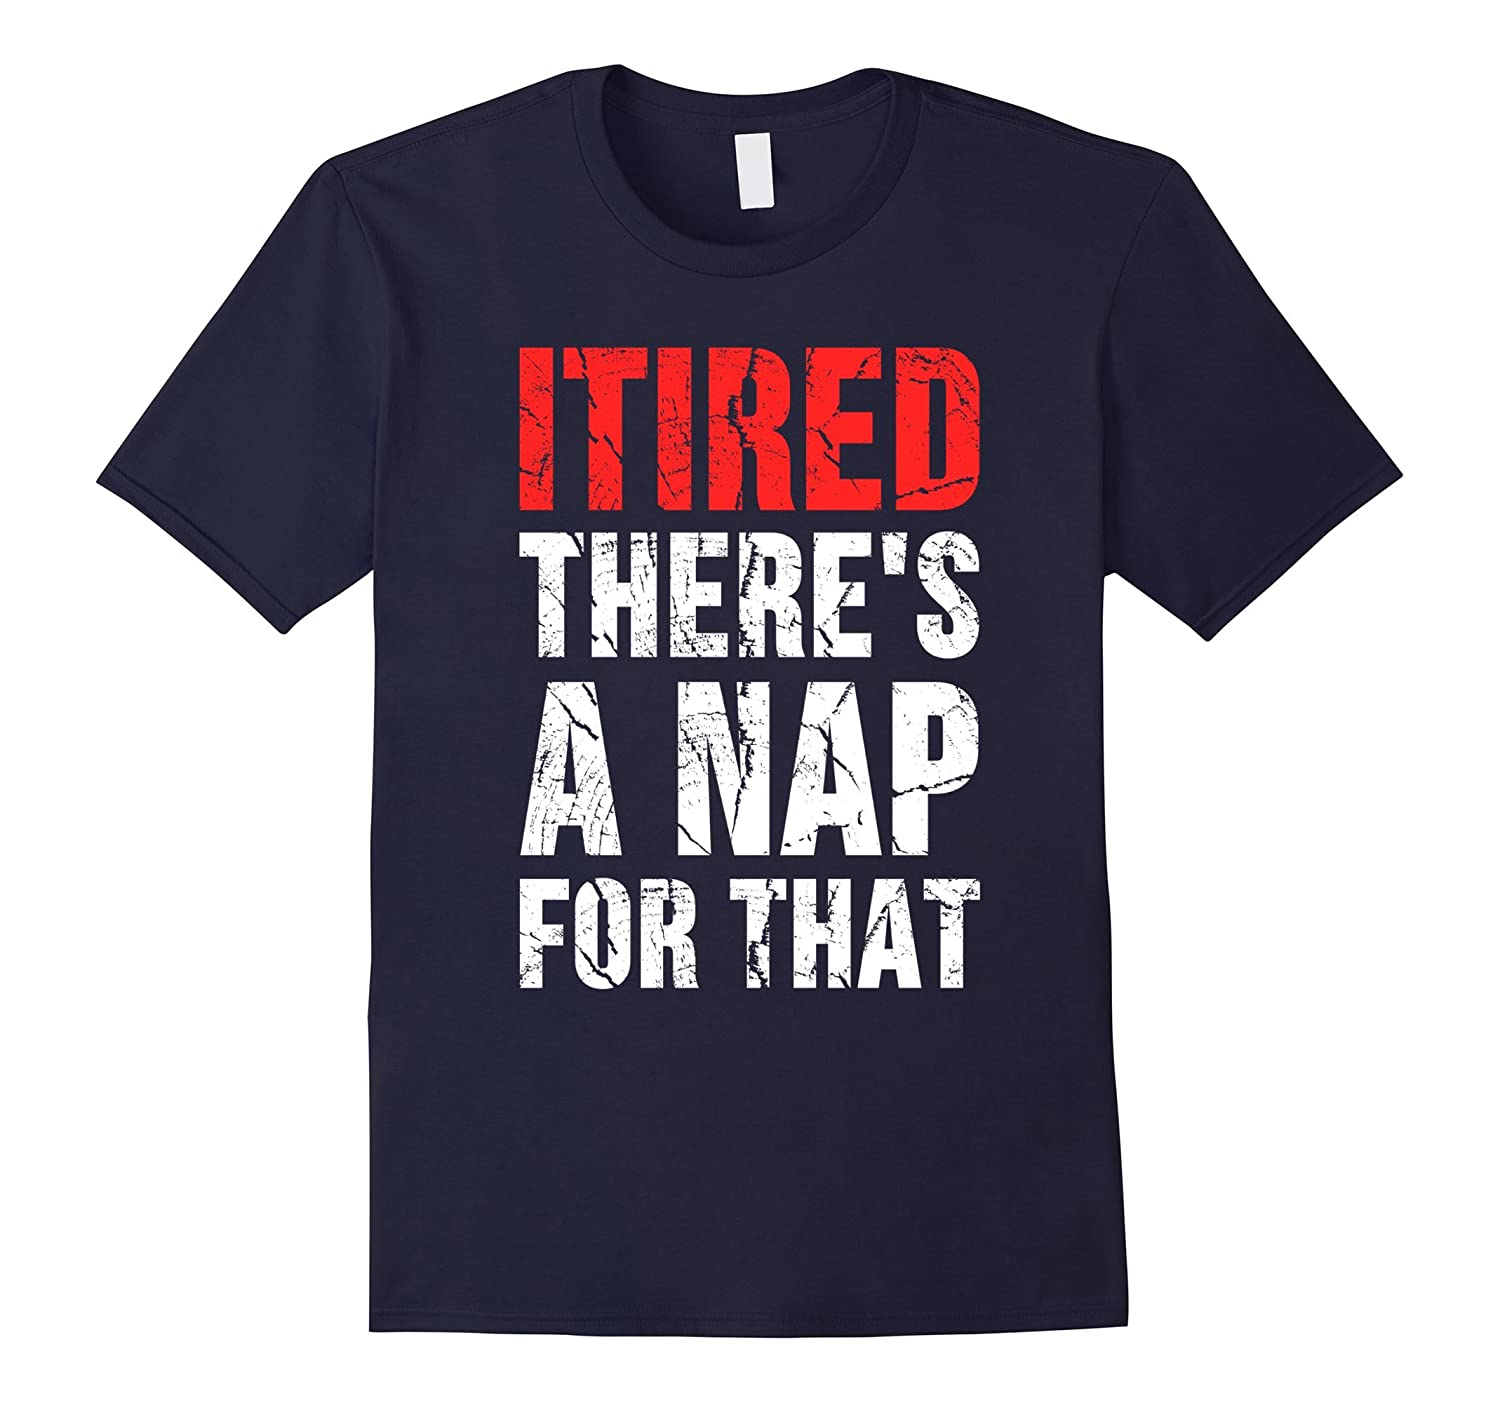 iTired Theres a nap for that t-shirt-TH